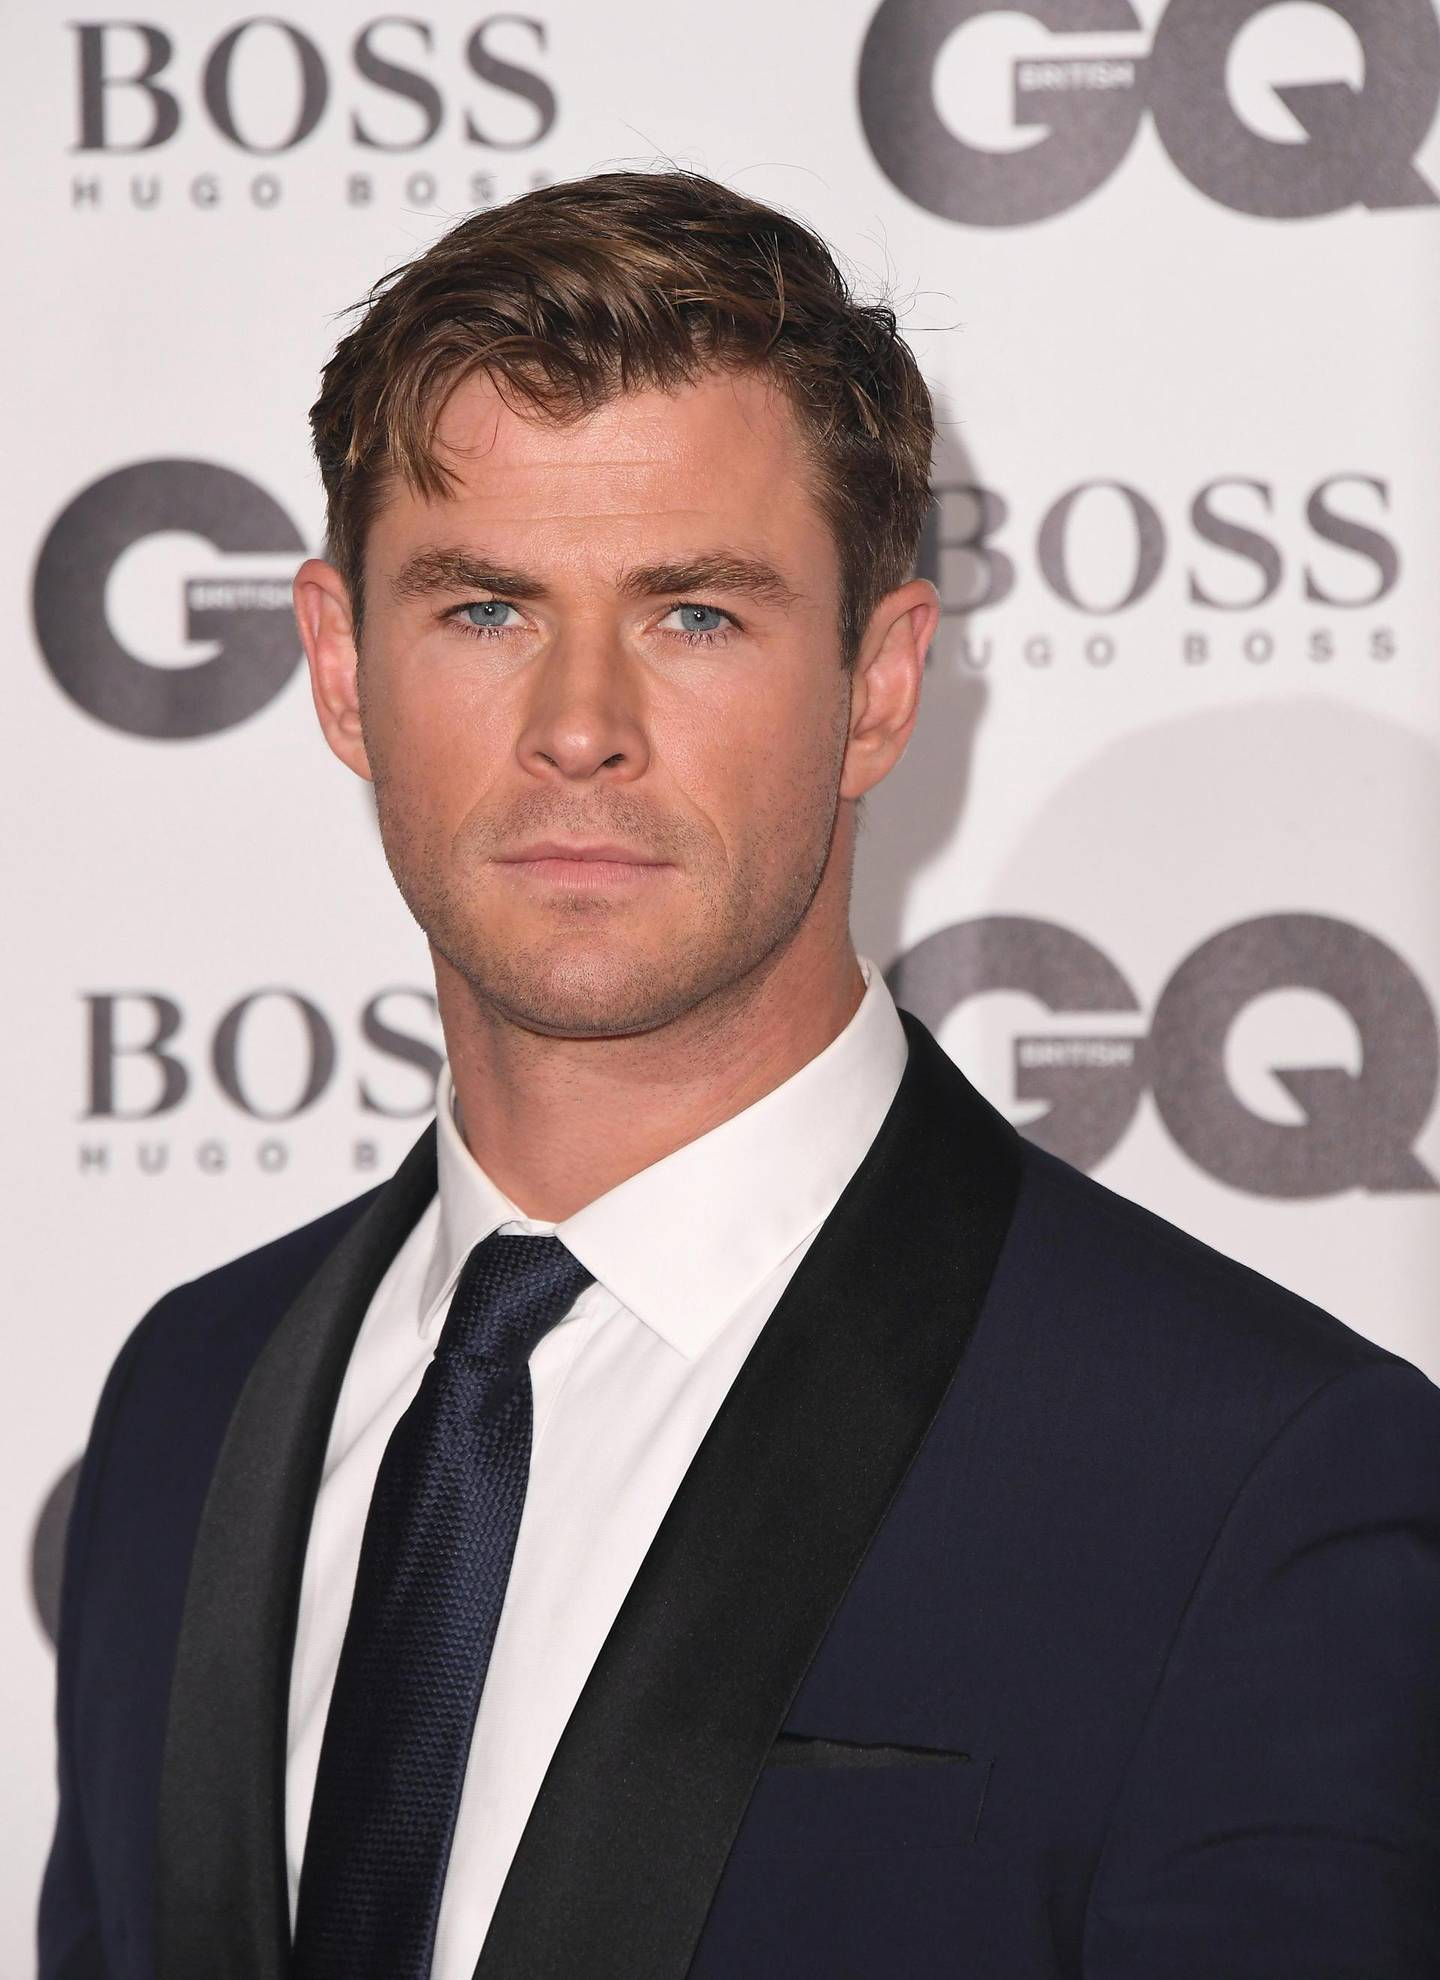 LONDON, ENGLAND - SEPTEMBER 05:  Chris Hemsworth attends the GQ Men of the Year awards at the Tate Modern on September 5, 2018 in London, England.  (Photo by Stuart C. Wilson/Getty Images)